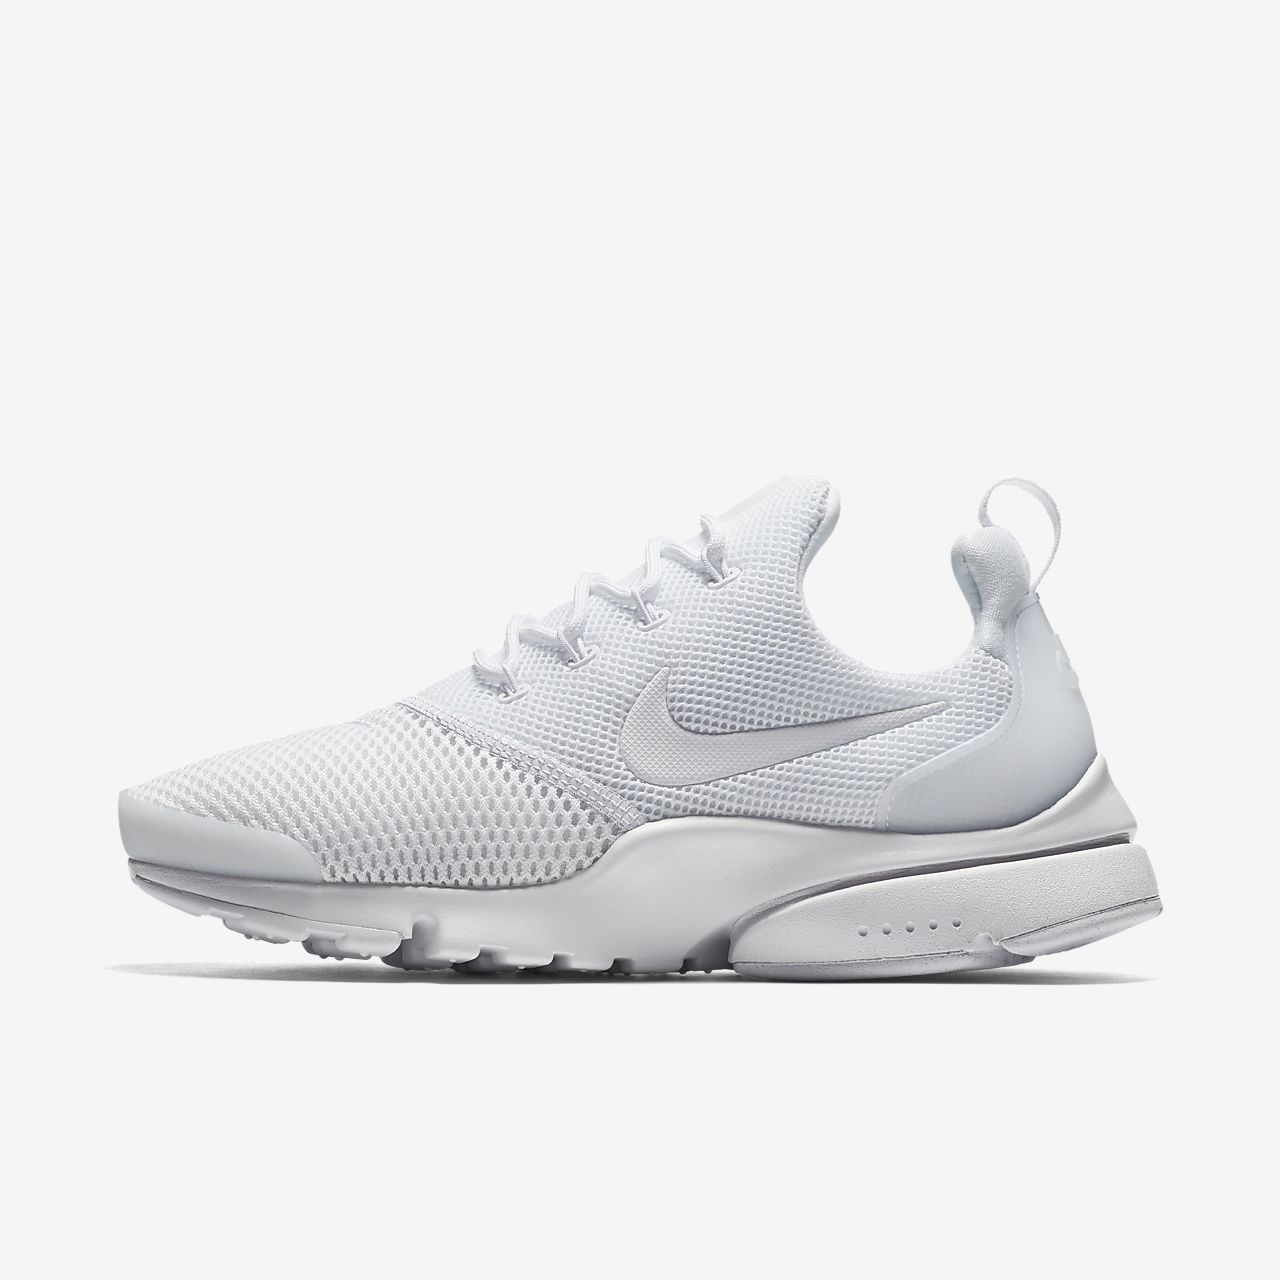 Women's Shoe. Nike Presto Fly